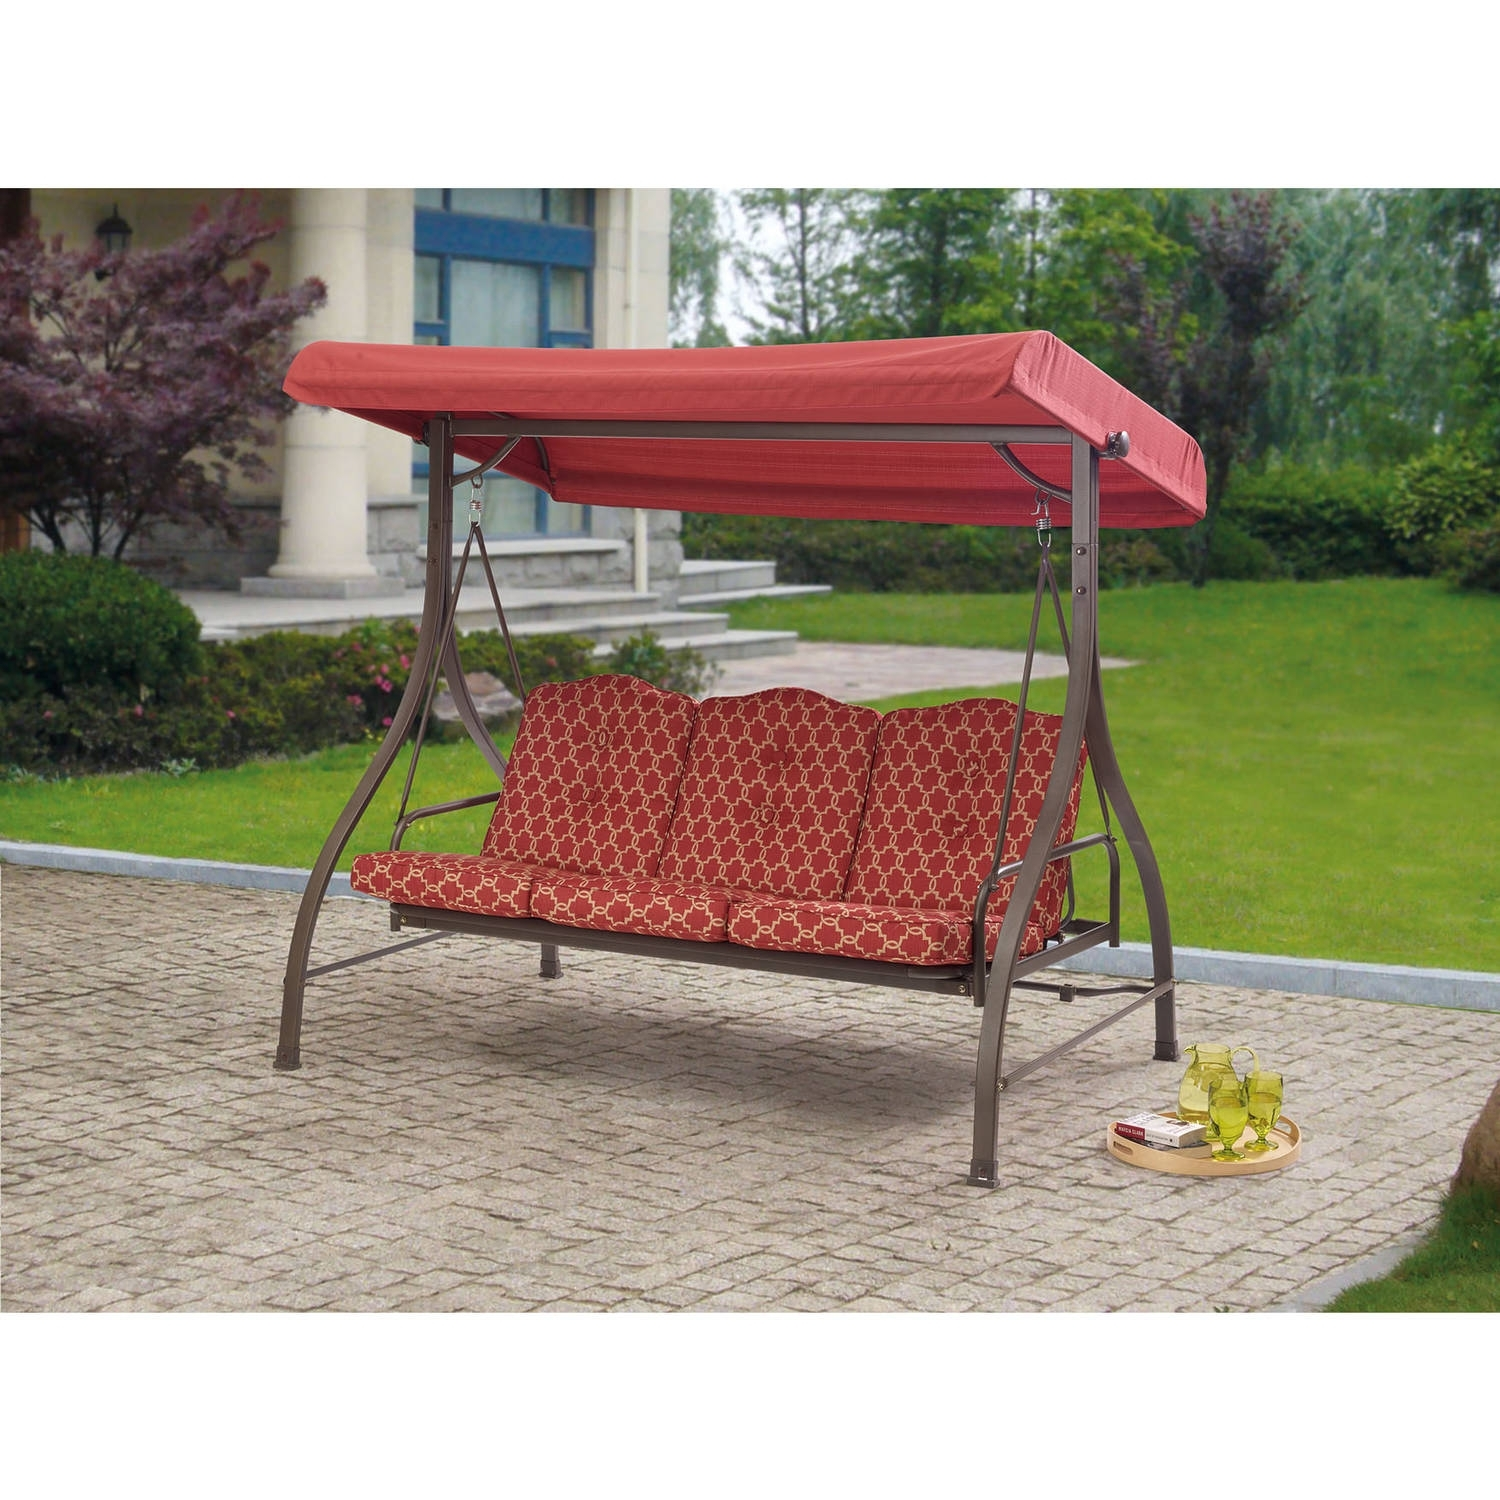 Mainstays Ashwood Heights 3 Seat Cushion Swing Walmart With Regard To Red Outdoor Seat Cushions Red Outdoor Seat Cushions Set For Patio